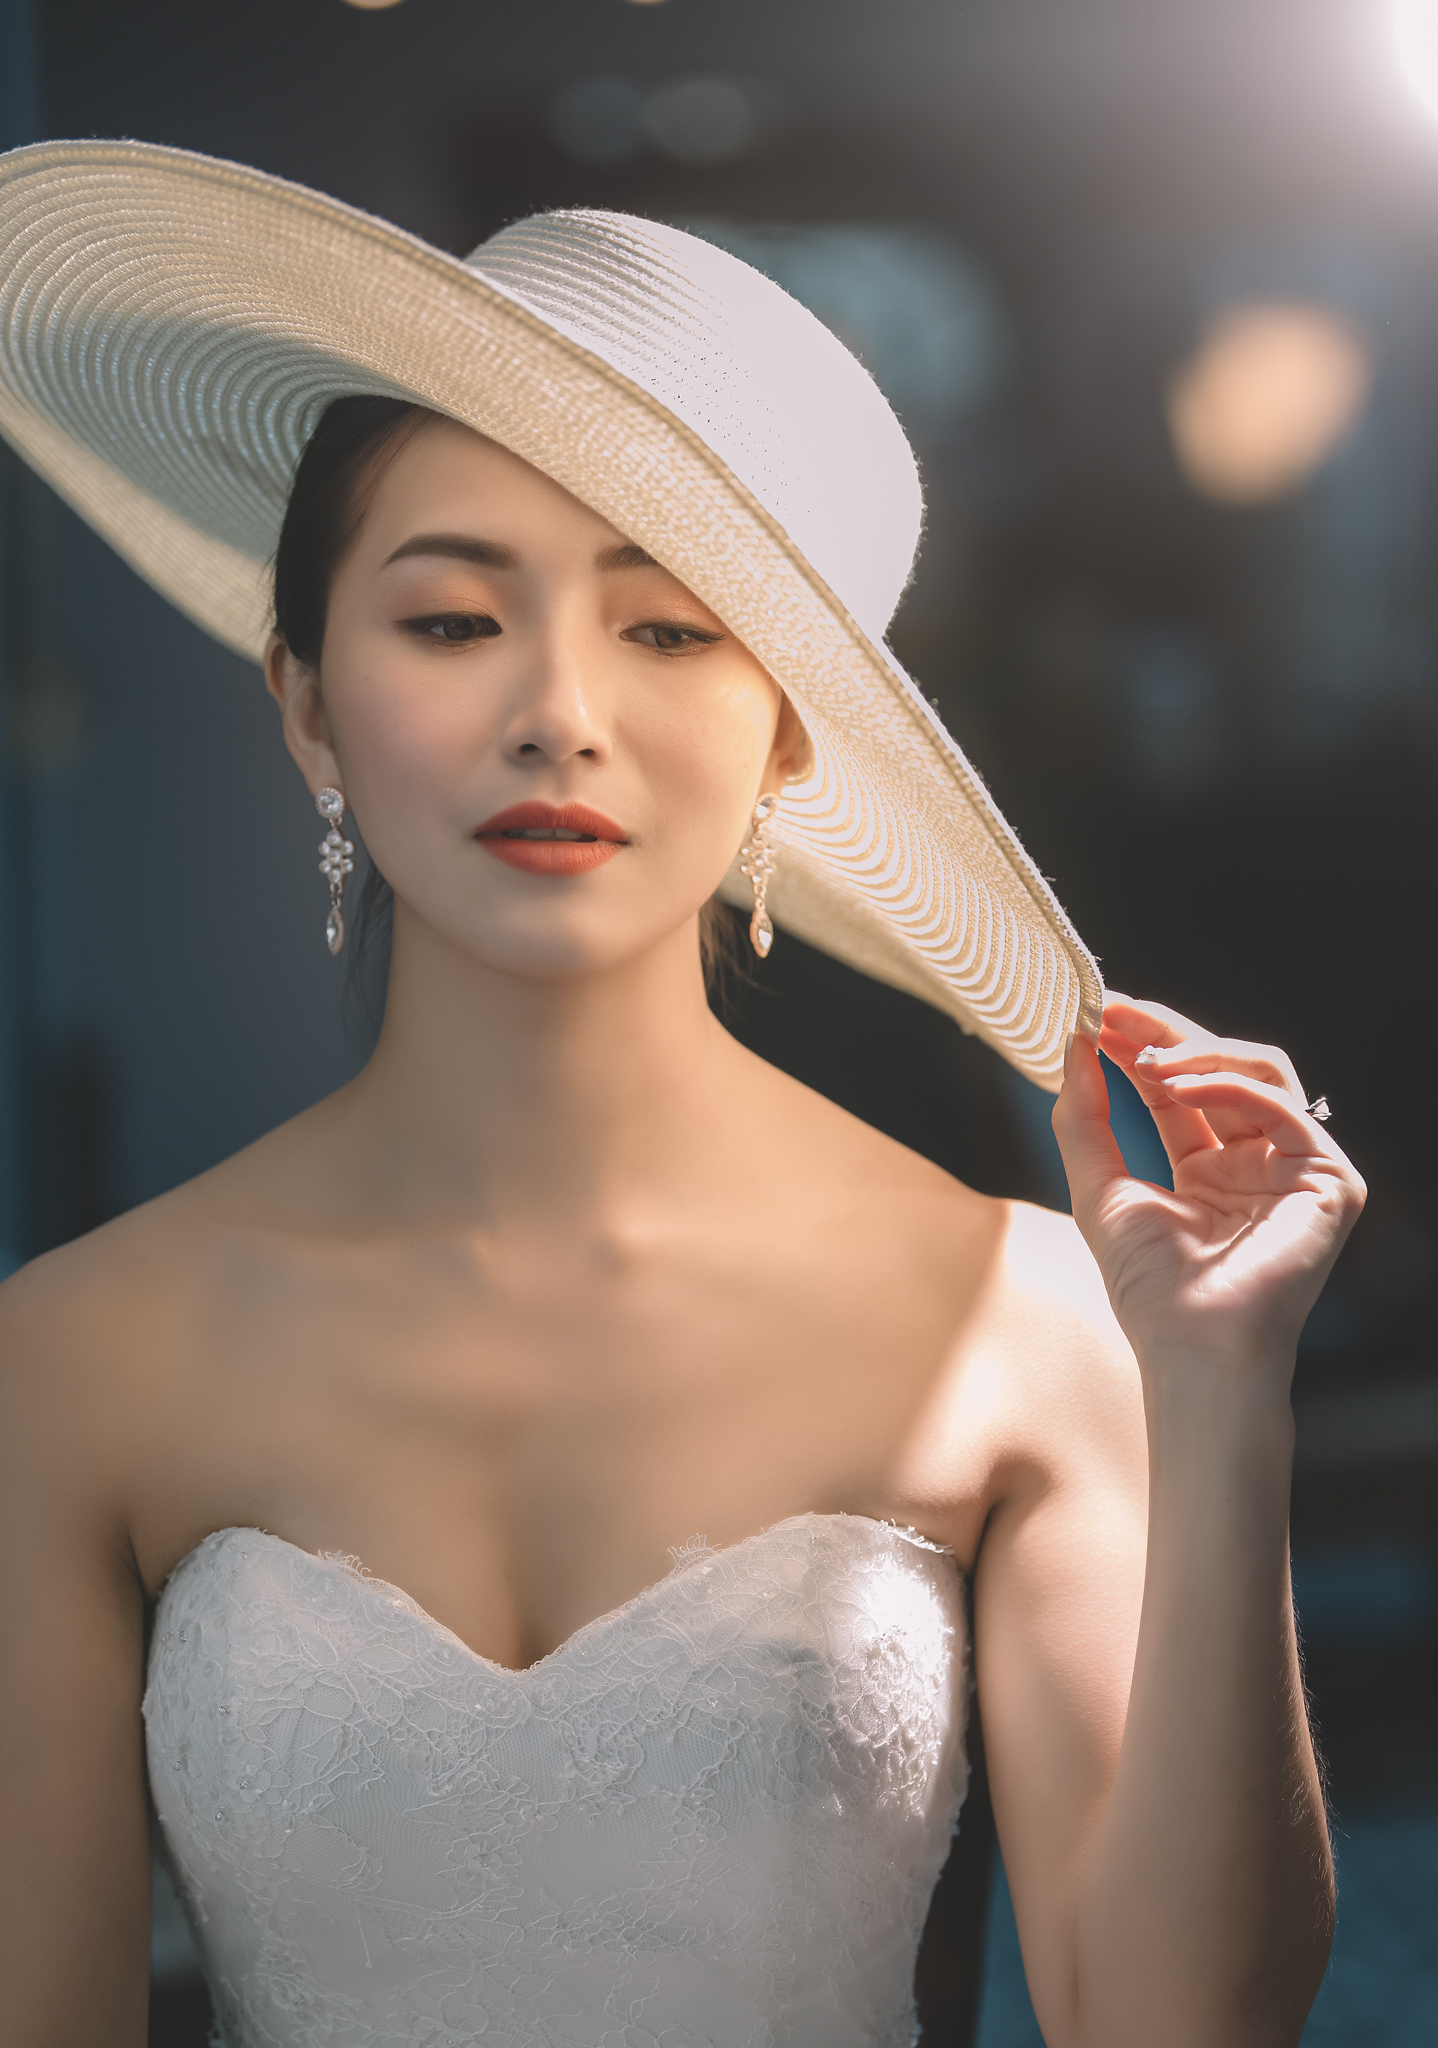 Bride with white brimmed hat and chandelier earrings - photo by Edwin Tan Photography